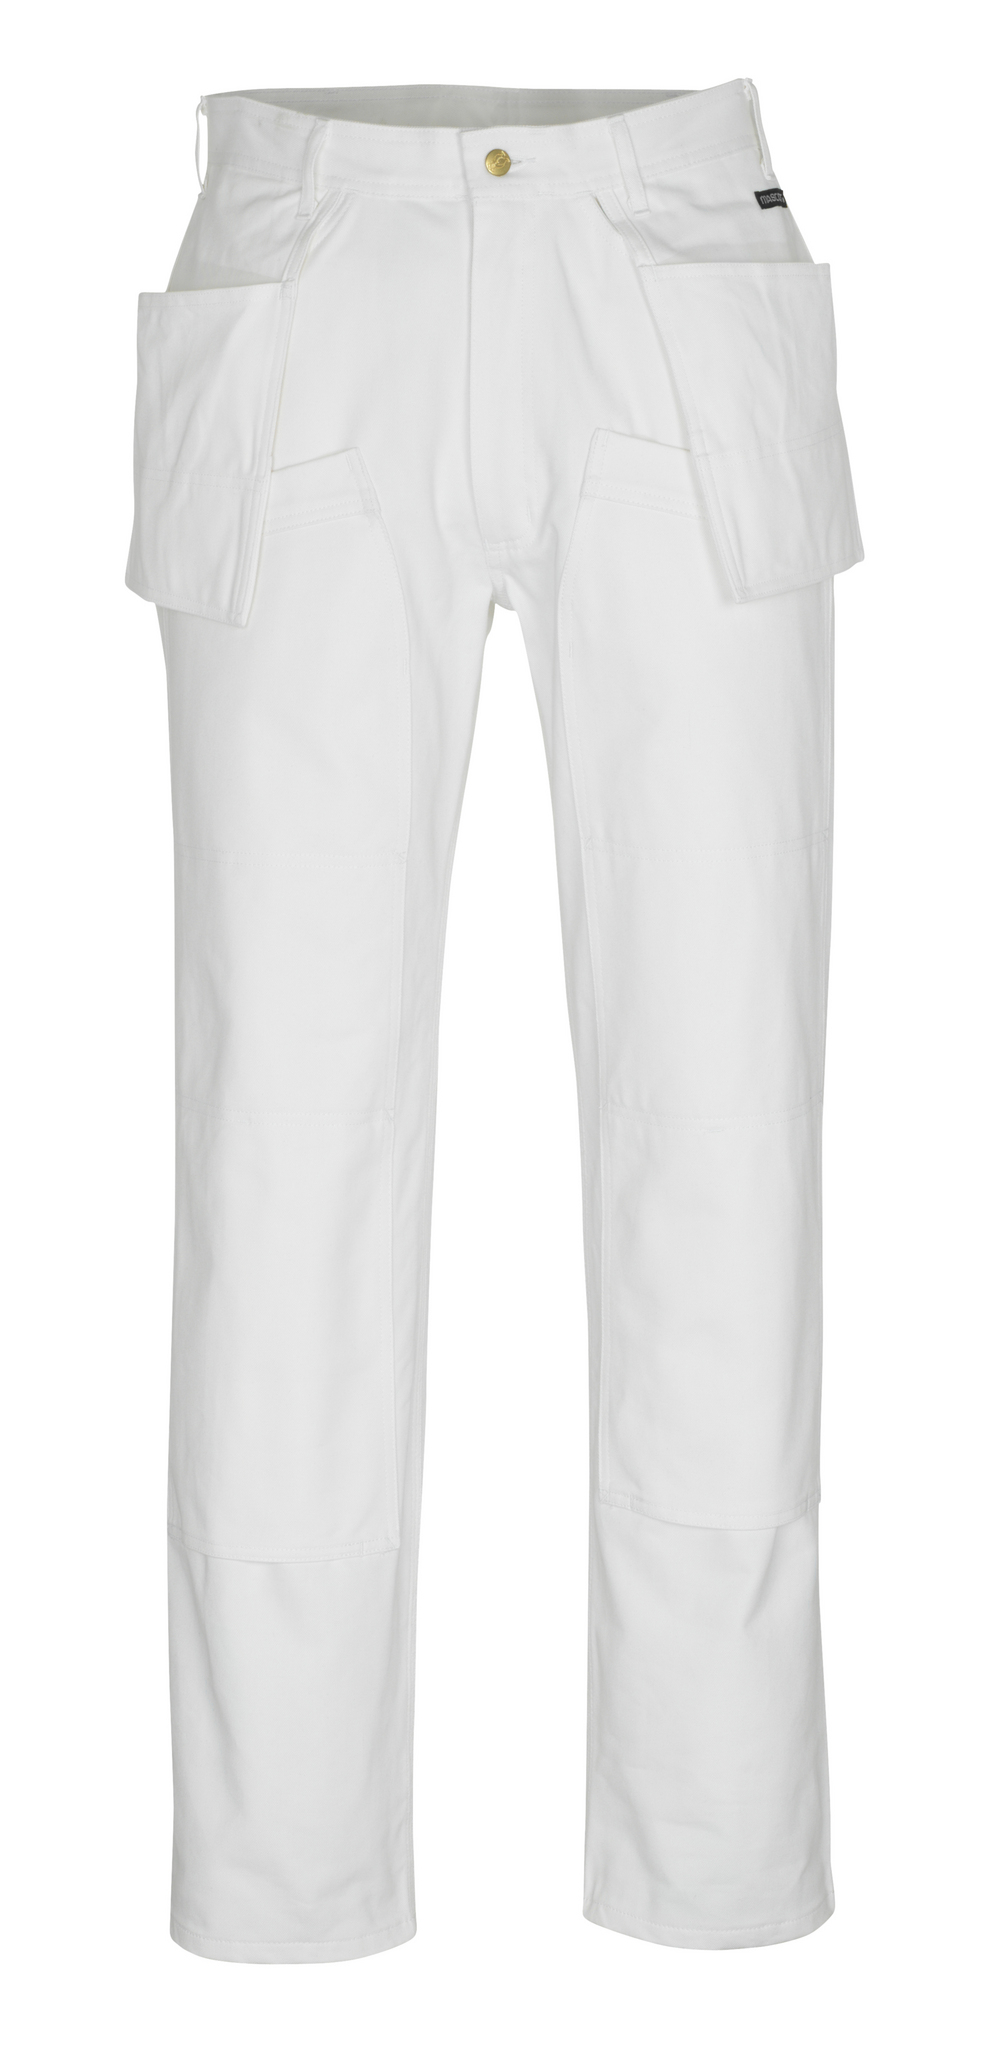 00538-630-06 Trousers with kneepad pockets and holster pockets - white